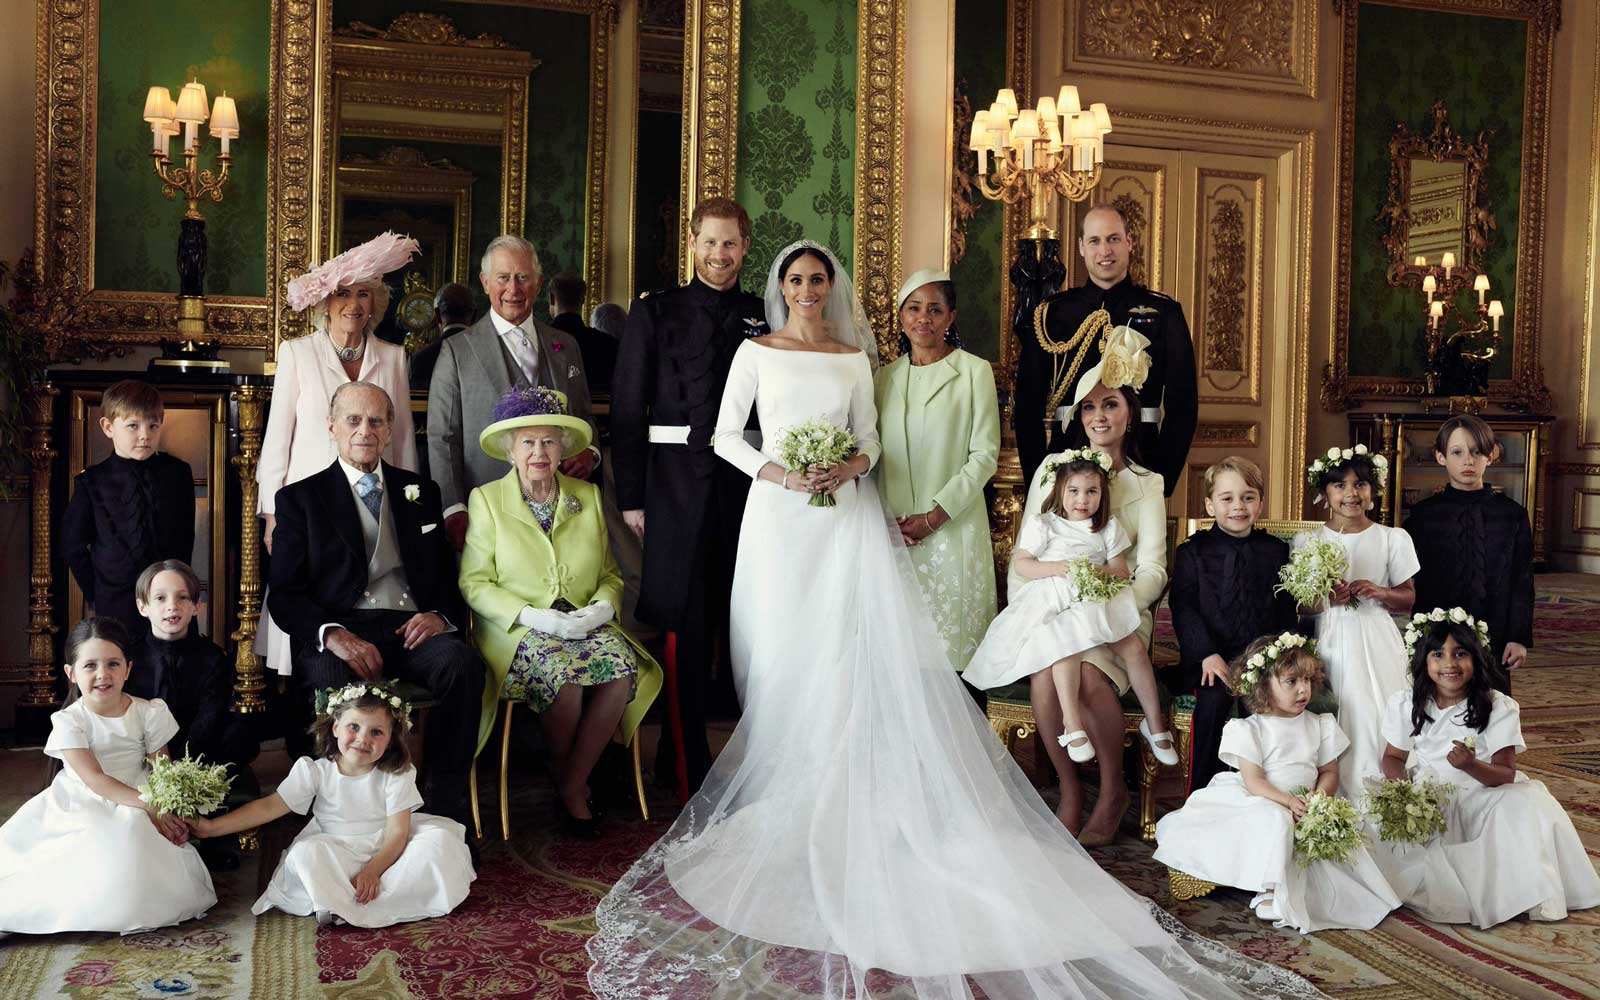 Prince Harry and Meghan Markle's Official Royal Wedding Portraits Are Here and No One Looks Happier Than Prince George